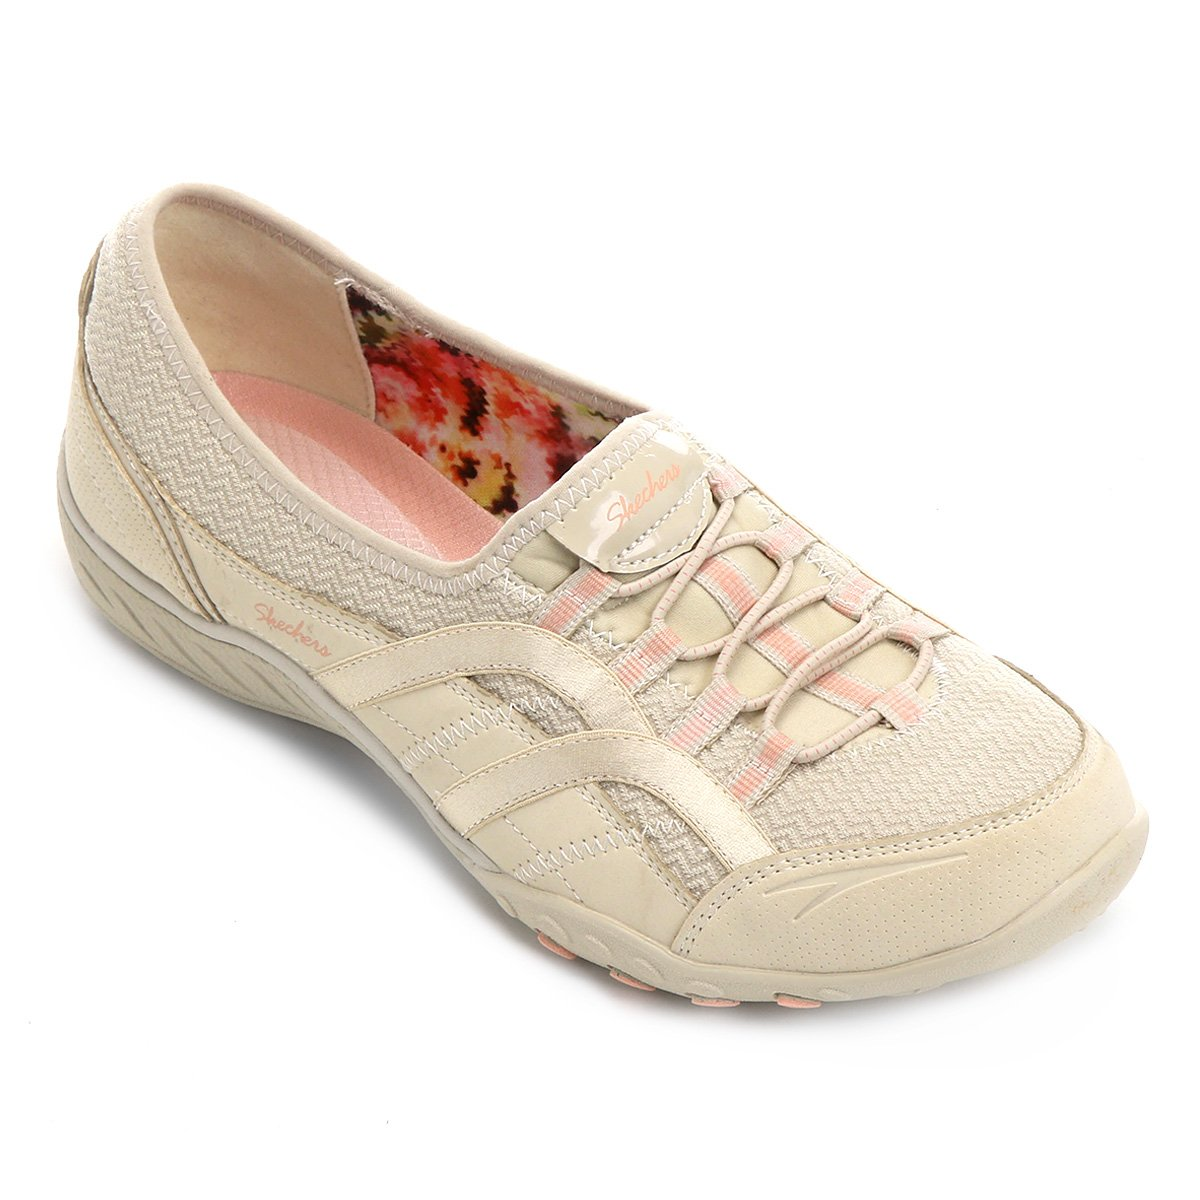 Sapatilha Skechers Breathe-Easy Faithful Feminina - Creme